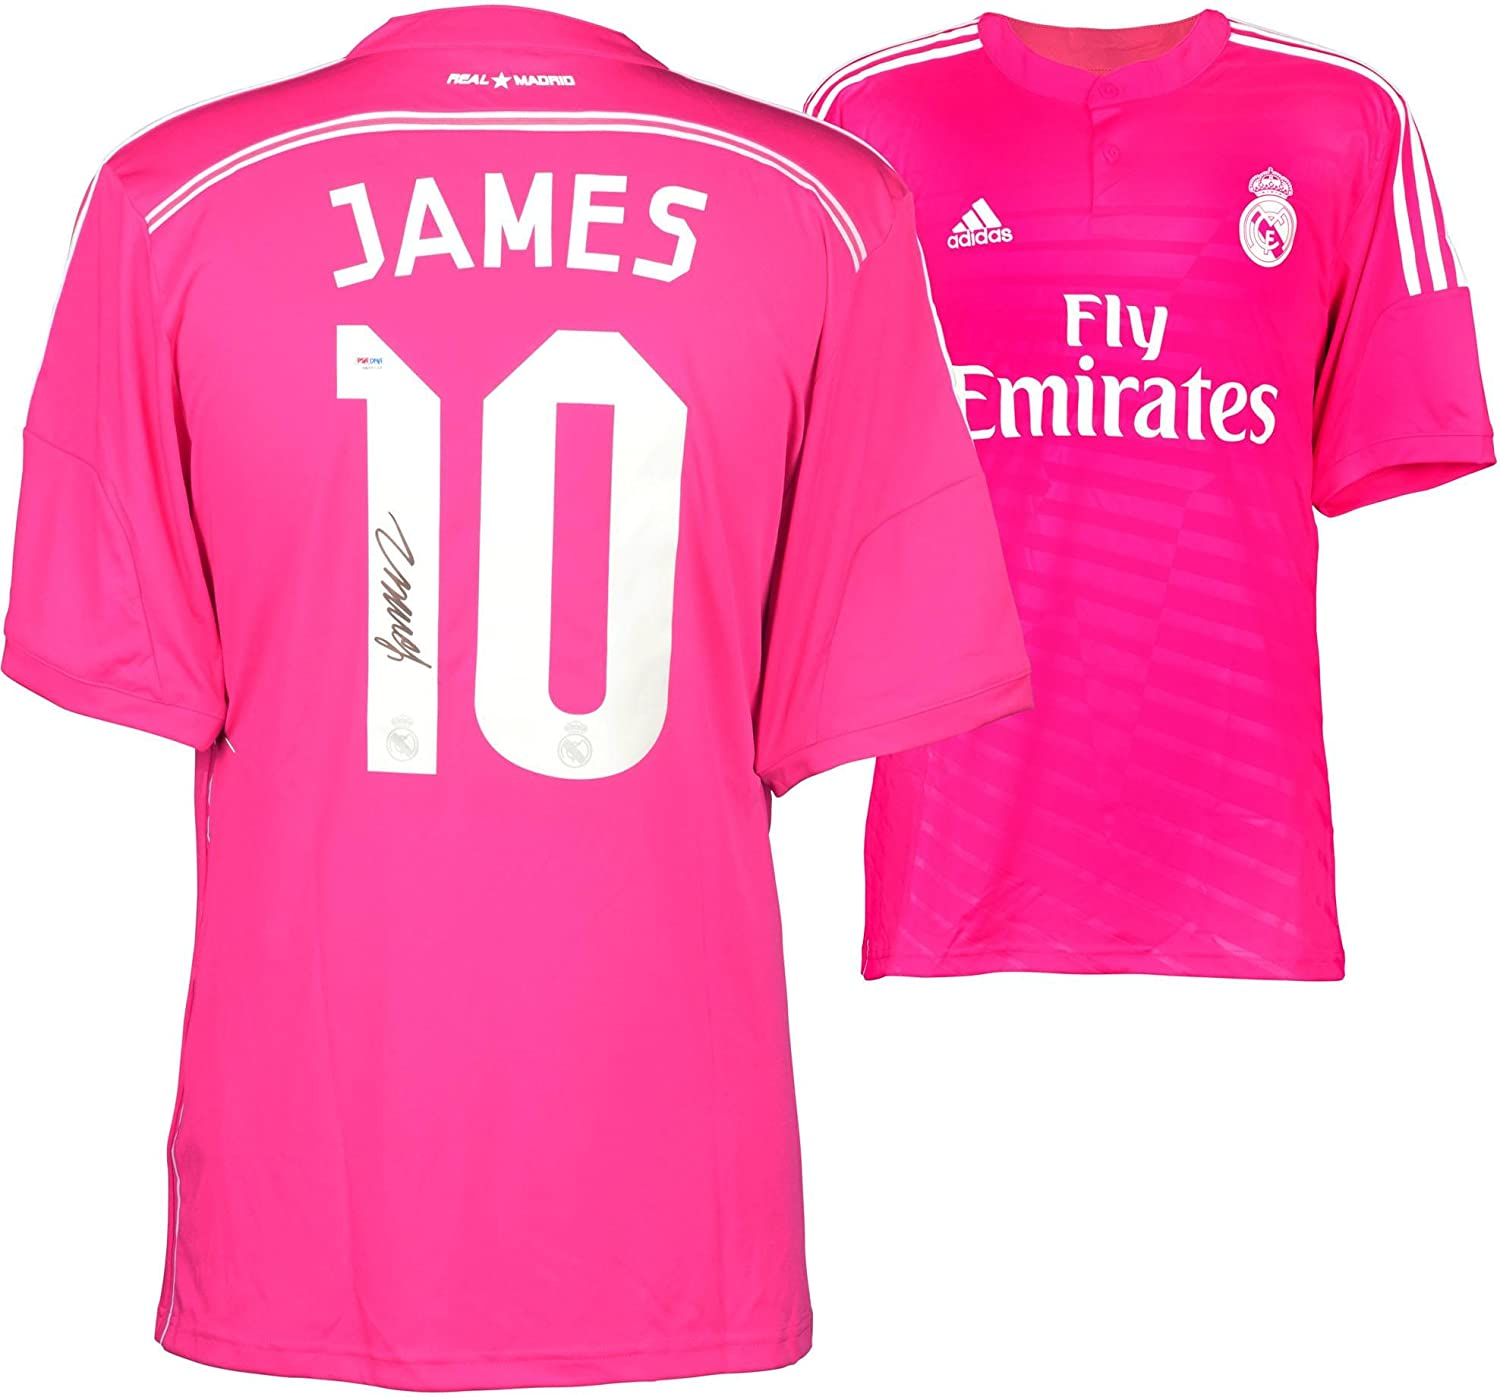 608c412f2b7 James Rodriguez Real Madrid Autographed Pink Jersey - Fanatics Authentic  Certified - Autographed Soccer Jerseys at Amazon's Sports Collectibles Store